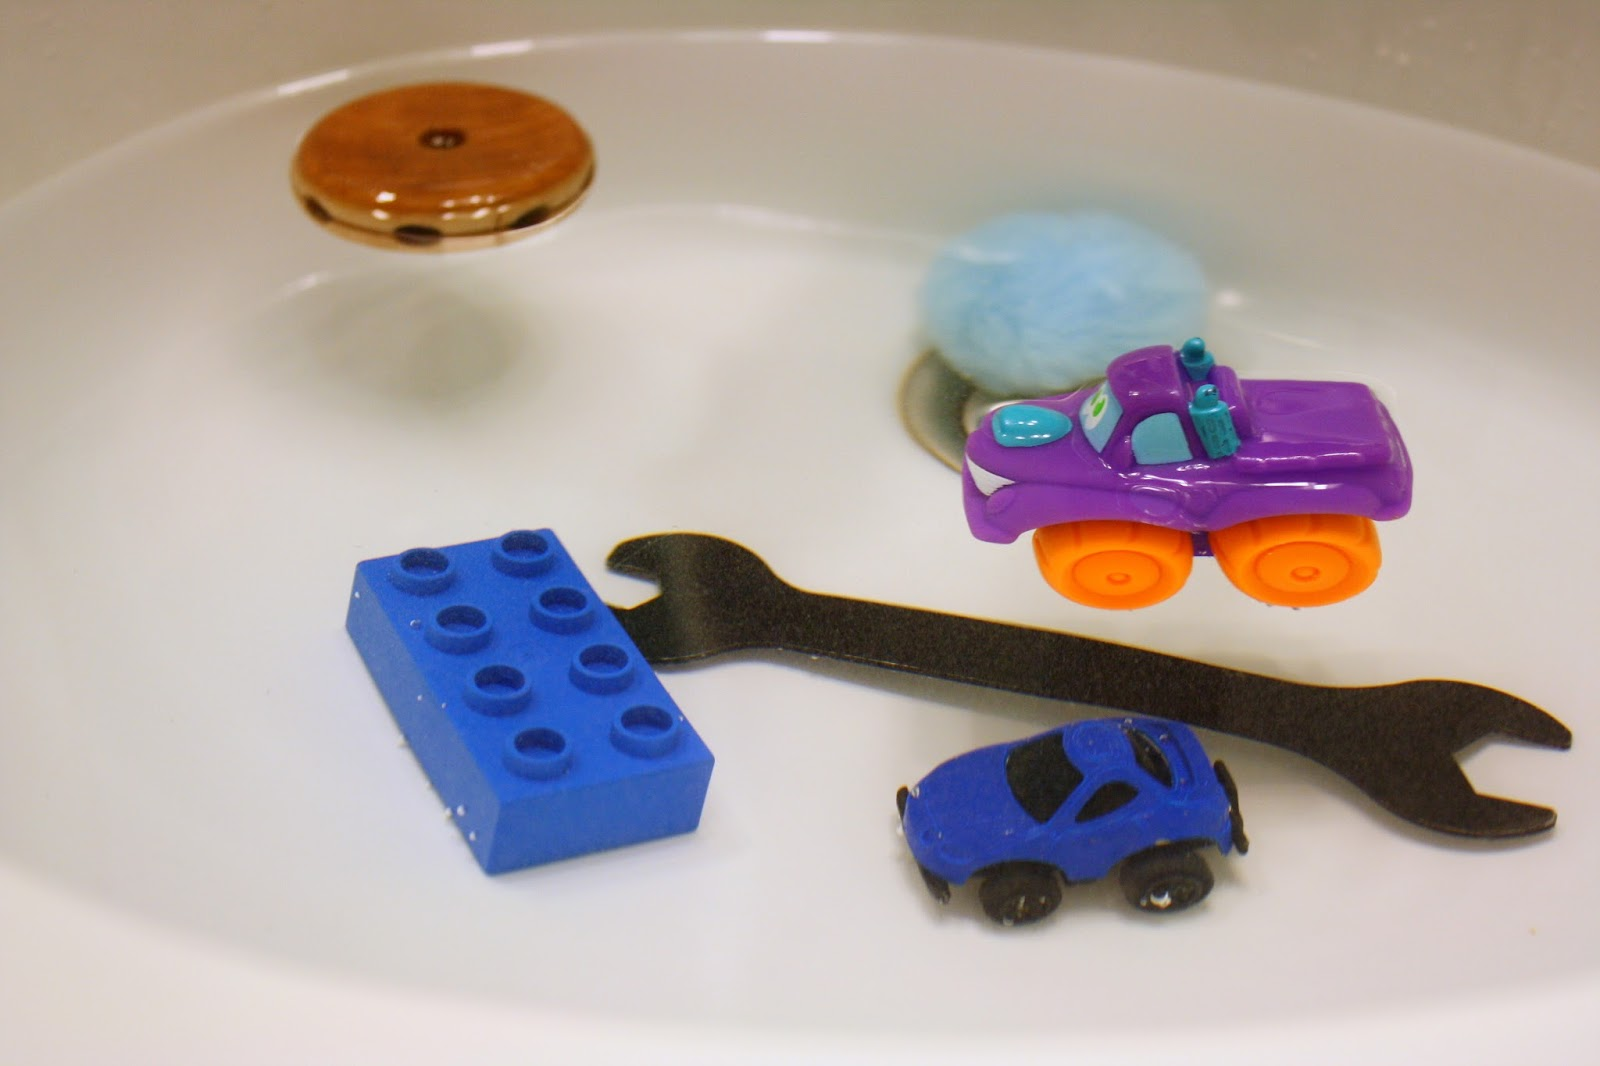 Toddler Science activities: water play sink or float with toys